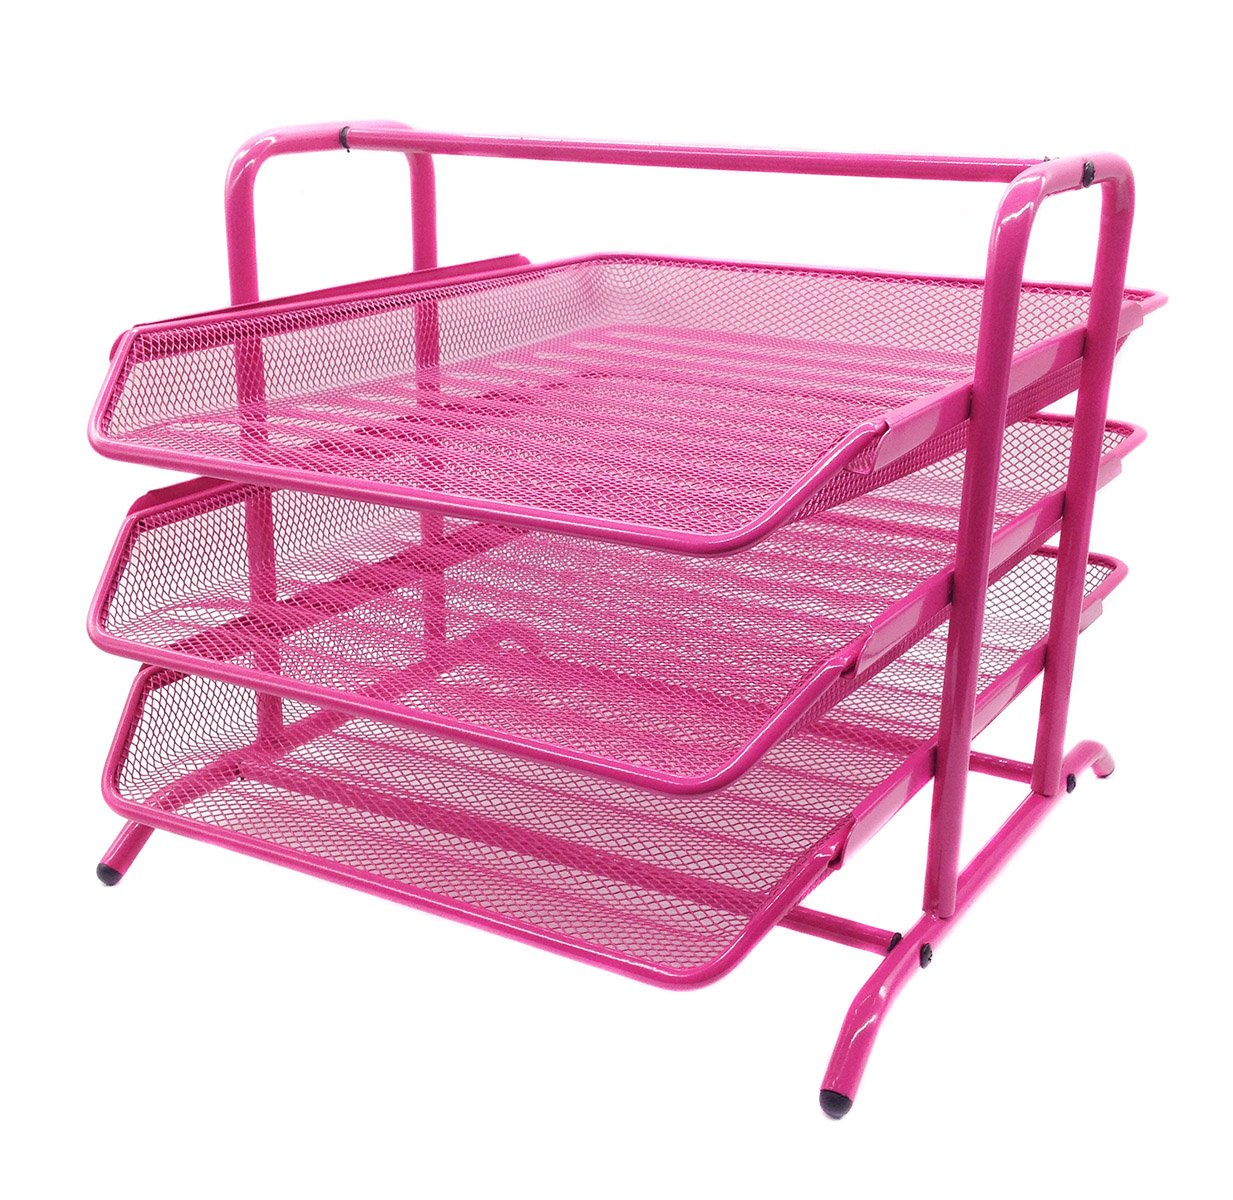 Cheap Pink Desk Tray, find Pink Desk Tray deals on line at Alibaba.com